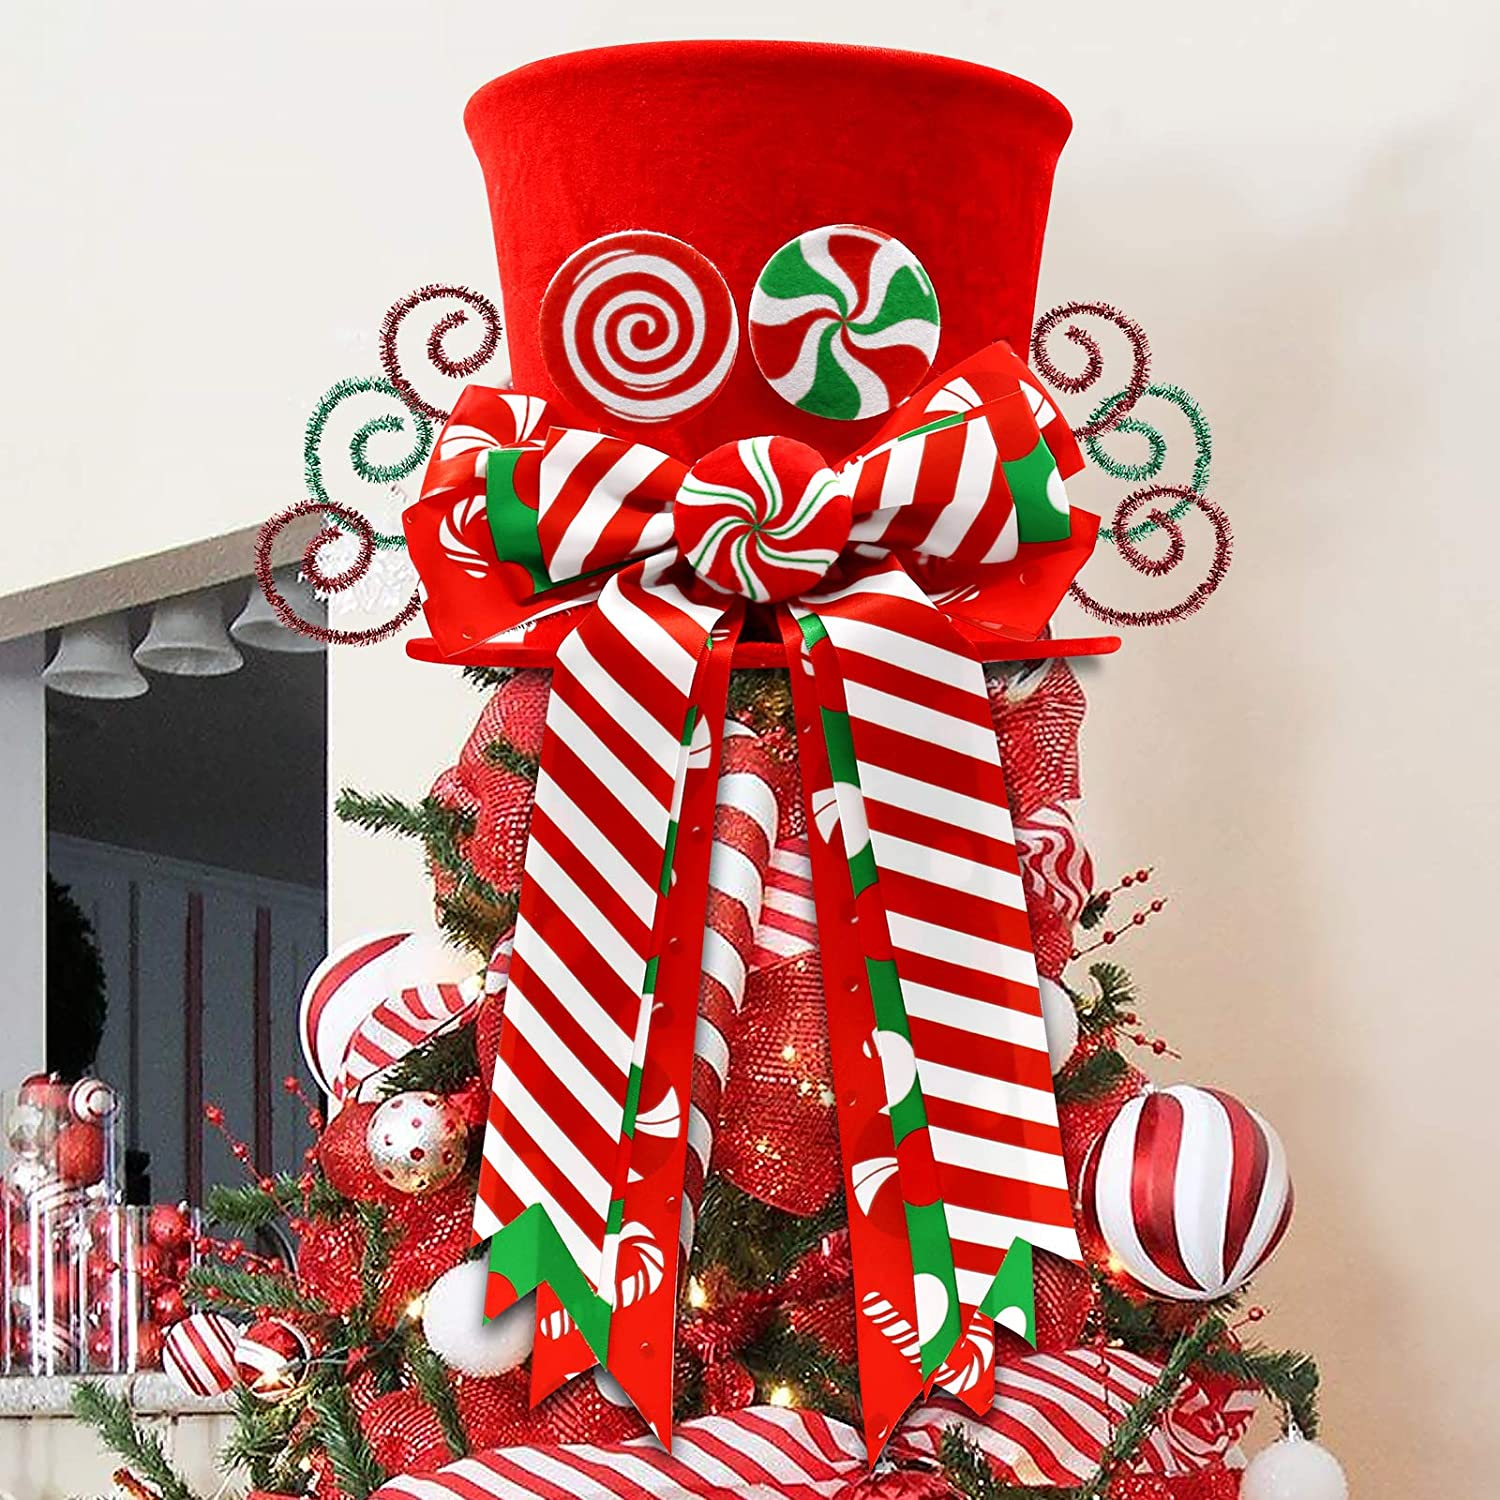 CiyvoLyeen Christmas Candy Canes Tree Topper Red Hat with Peppermint Bows Ornament Winter Lollipop Holiday Home Decoration Xmas Festive Gift Ideas Supplies